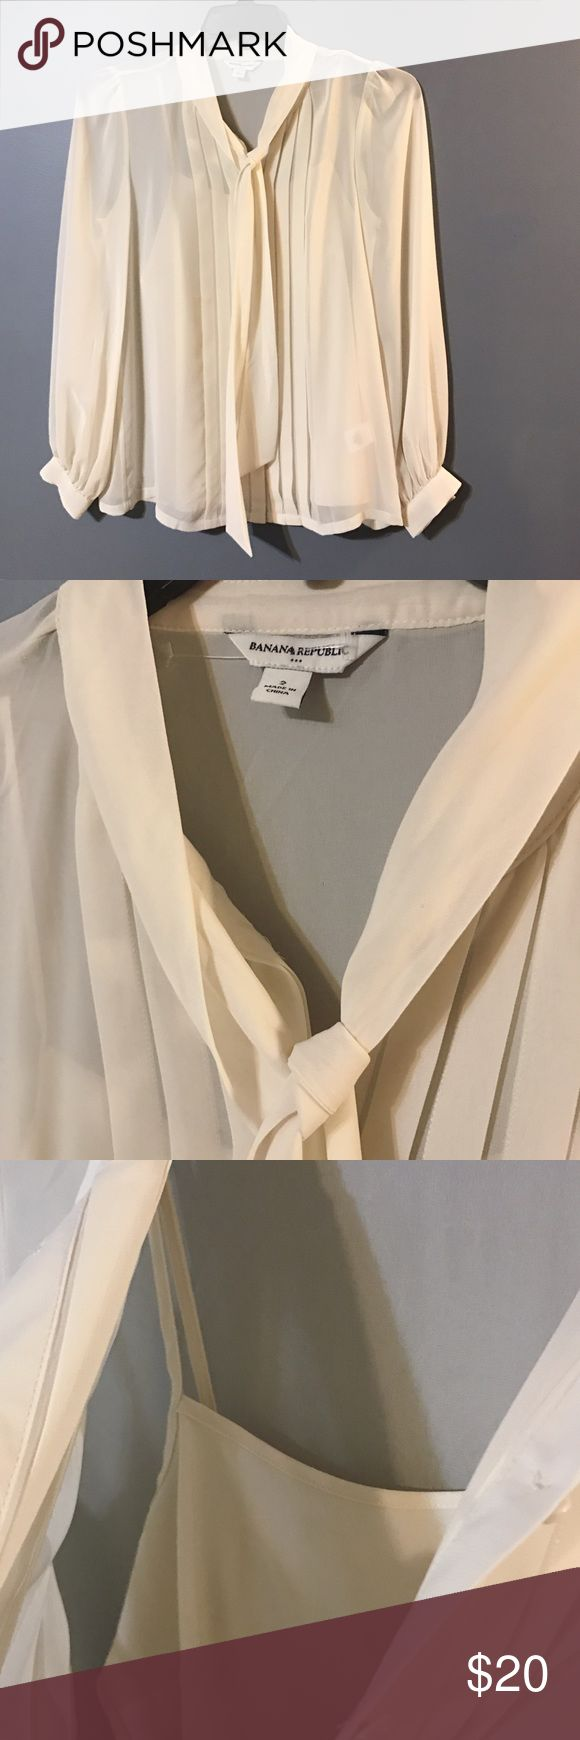 Banana Republic Blouse Like new condition trendy Blouse by Banana Republic. Cute tie around neckline. 100% polyester. Tank top underneath. Buttons down. Banana Republic Tops Blouses